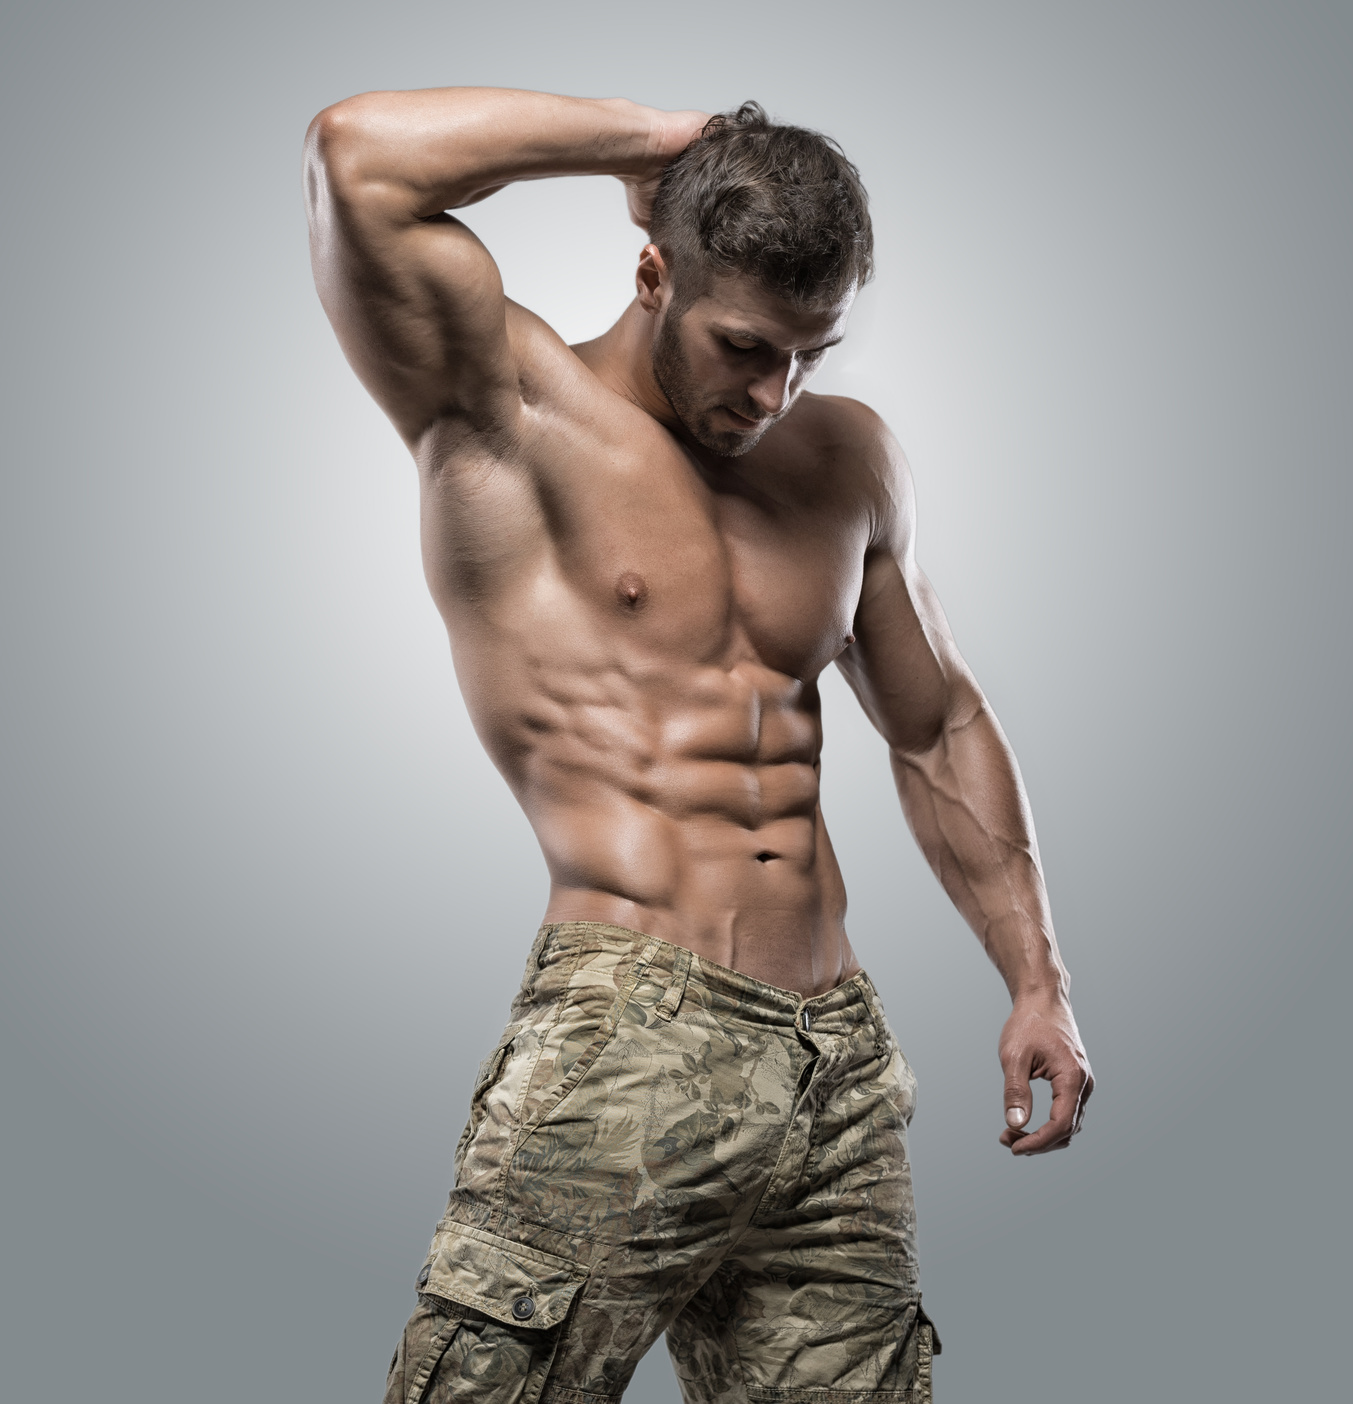 Muscular athlete bodybuilder man on a gray background